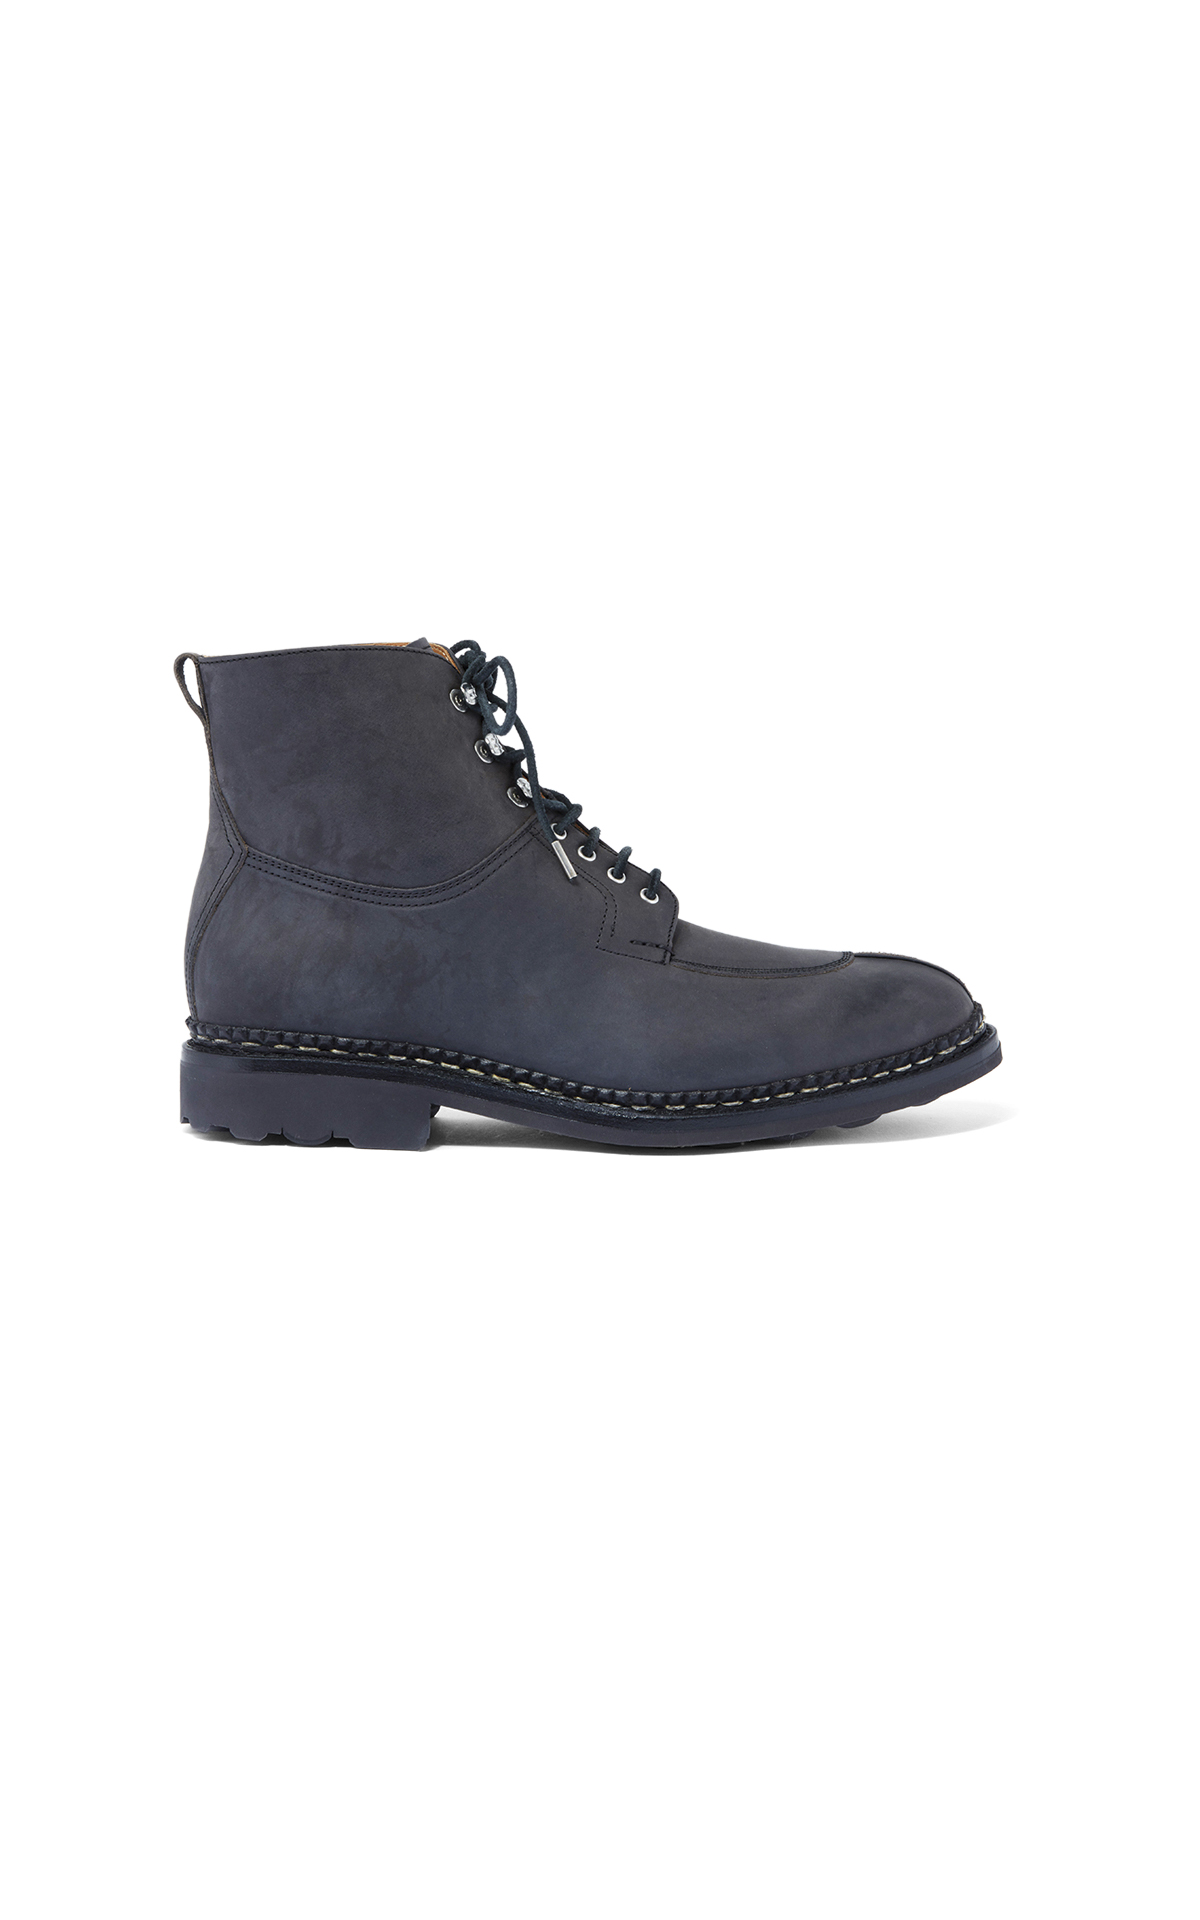 Heschung Ginkgo Country boots